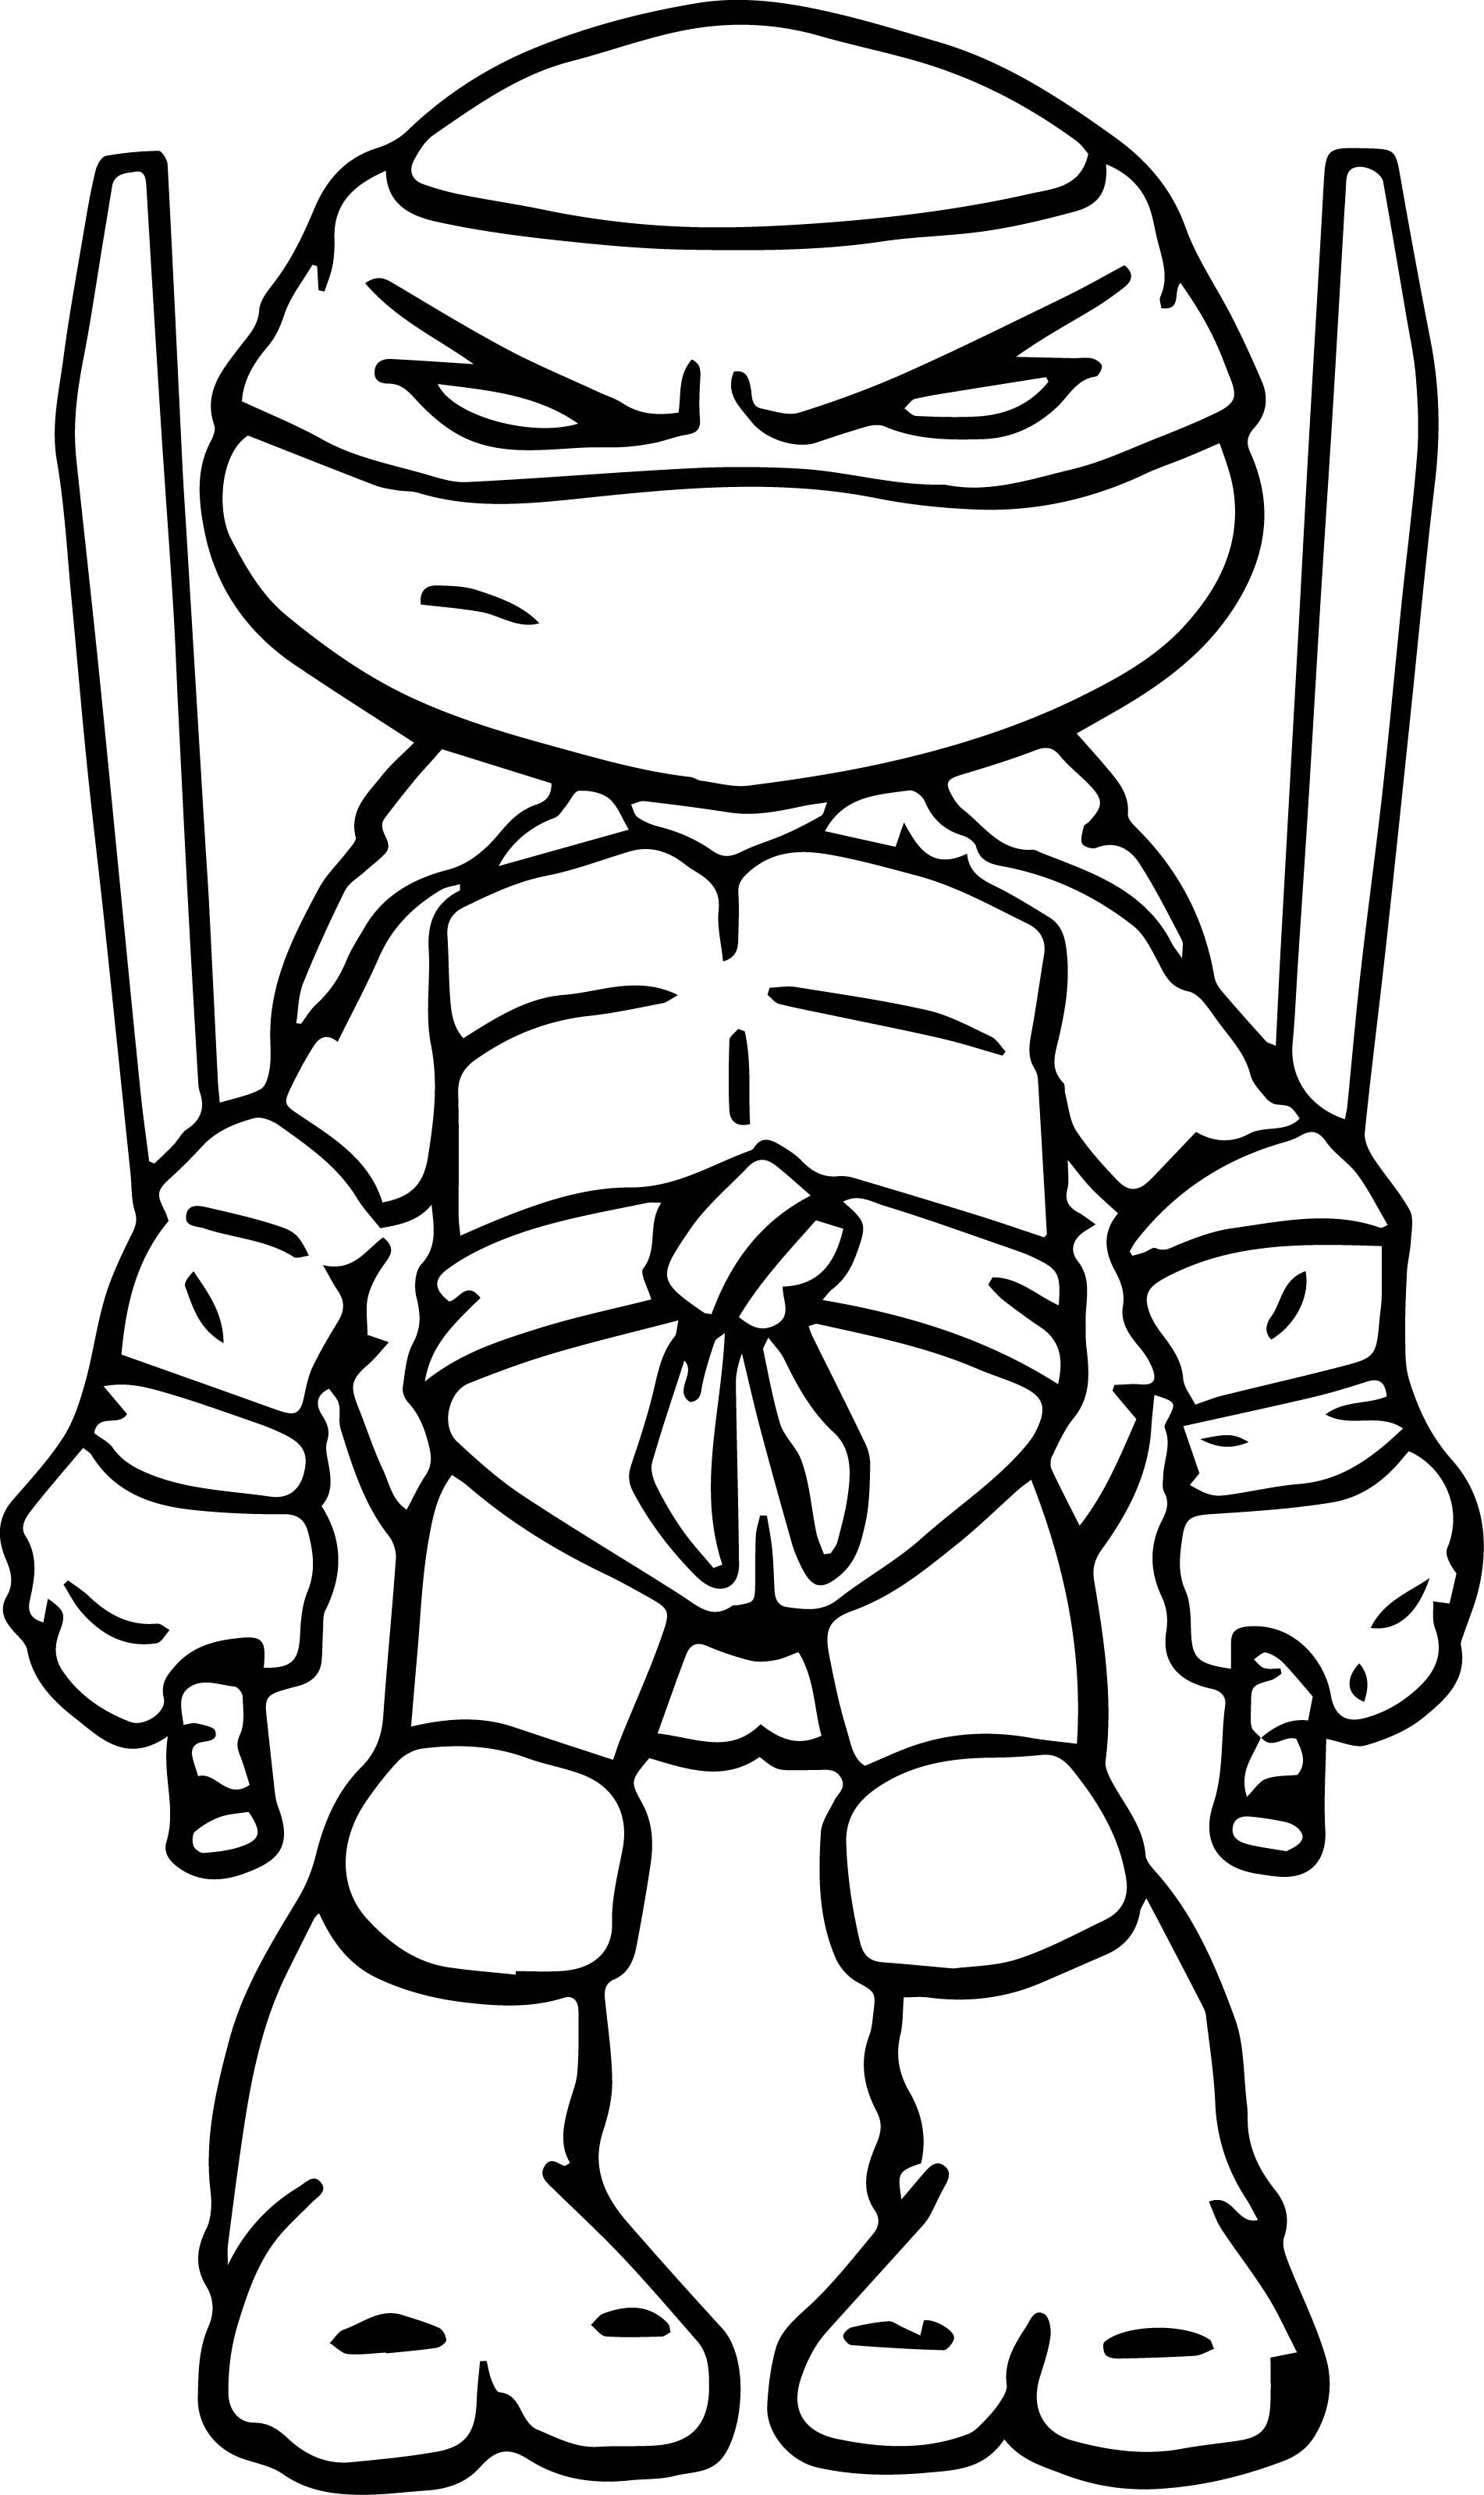 teenage mutant ninja turtle coloring pages Ninja Turtles Art Coloring Page | TMNT Party | Ninja turtle  teenage mutant ninja turtle coloring pages